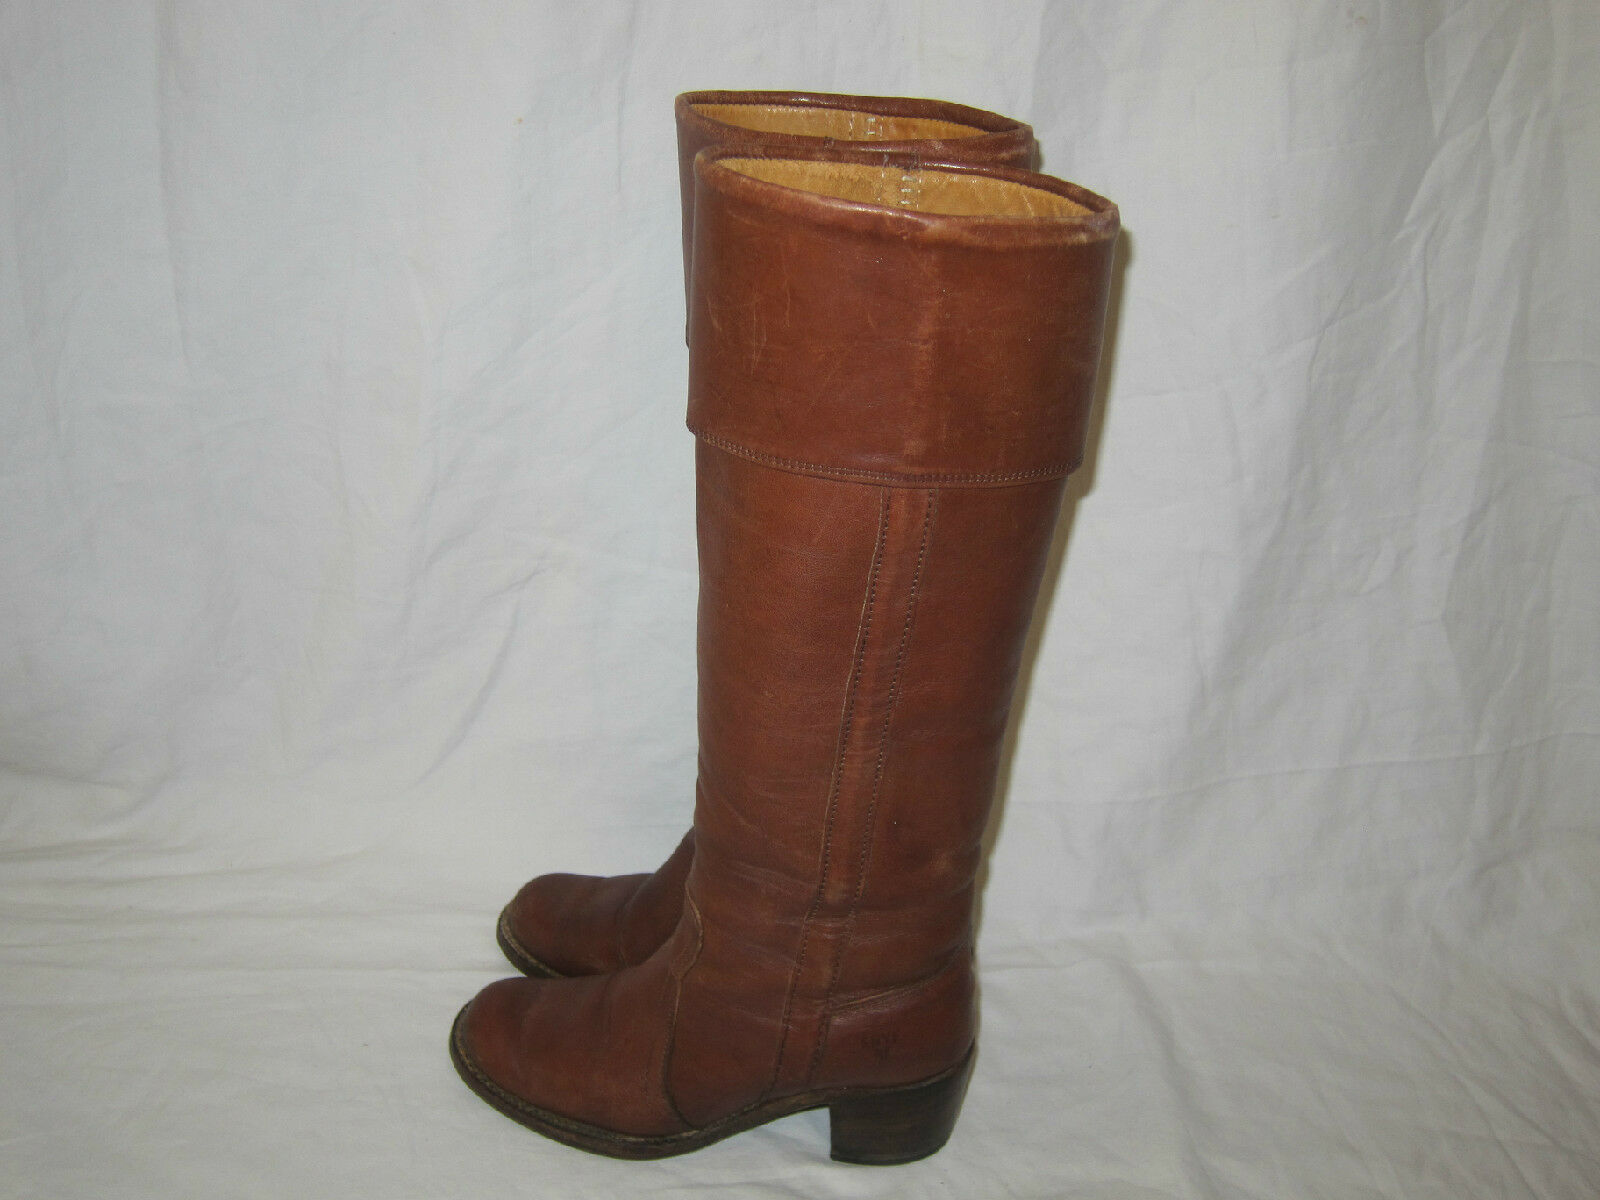 Vtg FRYE USA Leather Boots Campus Tall Riding Western Brown Womens 5.5 B Nice!